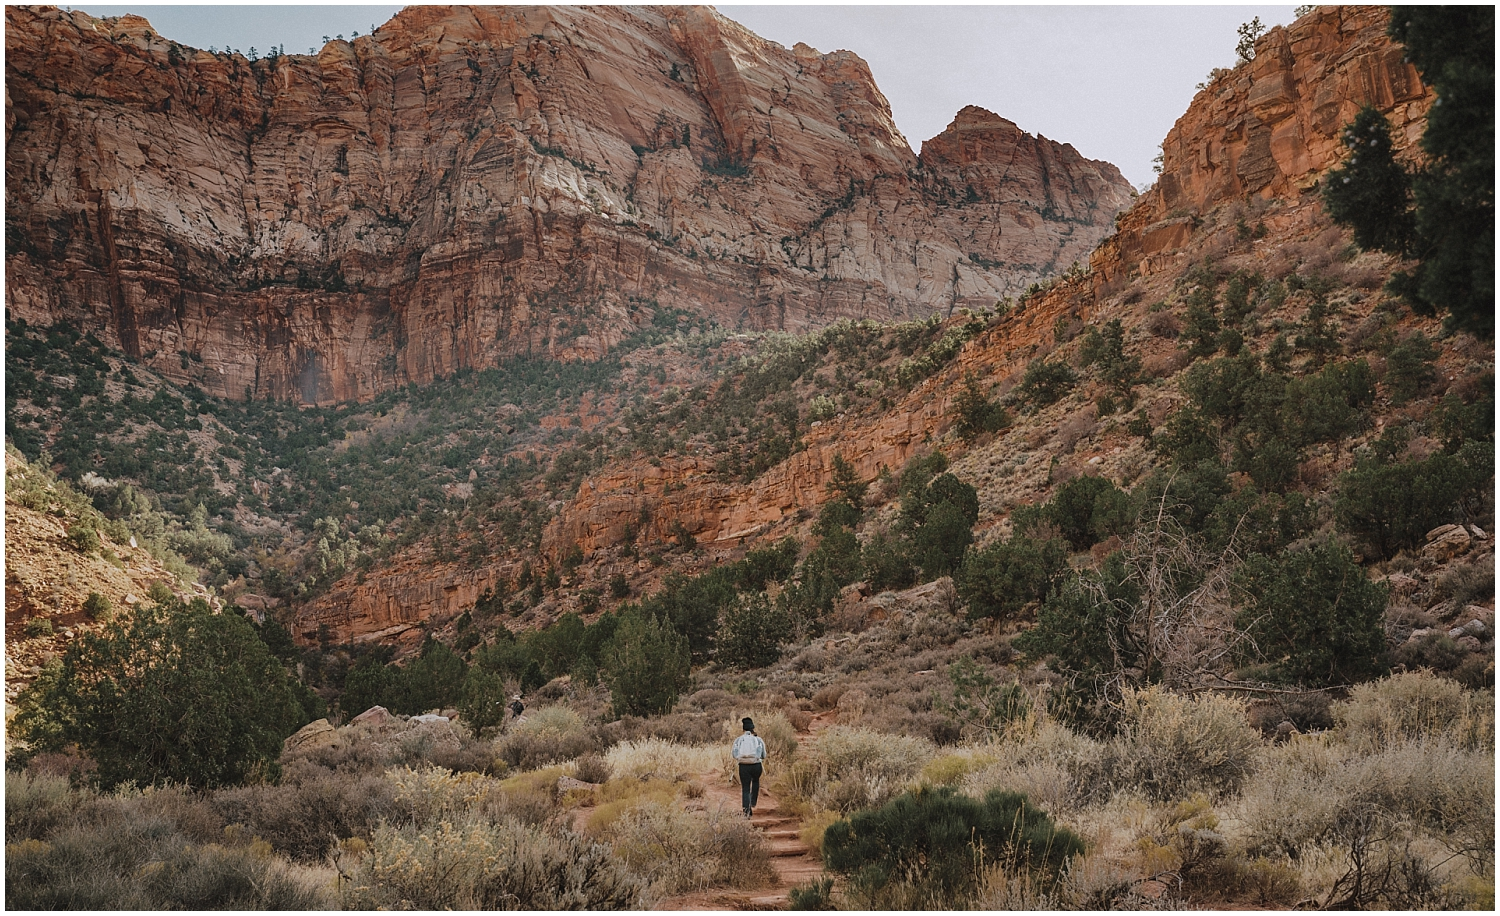 Person walking through Zion National Park